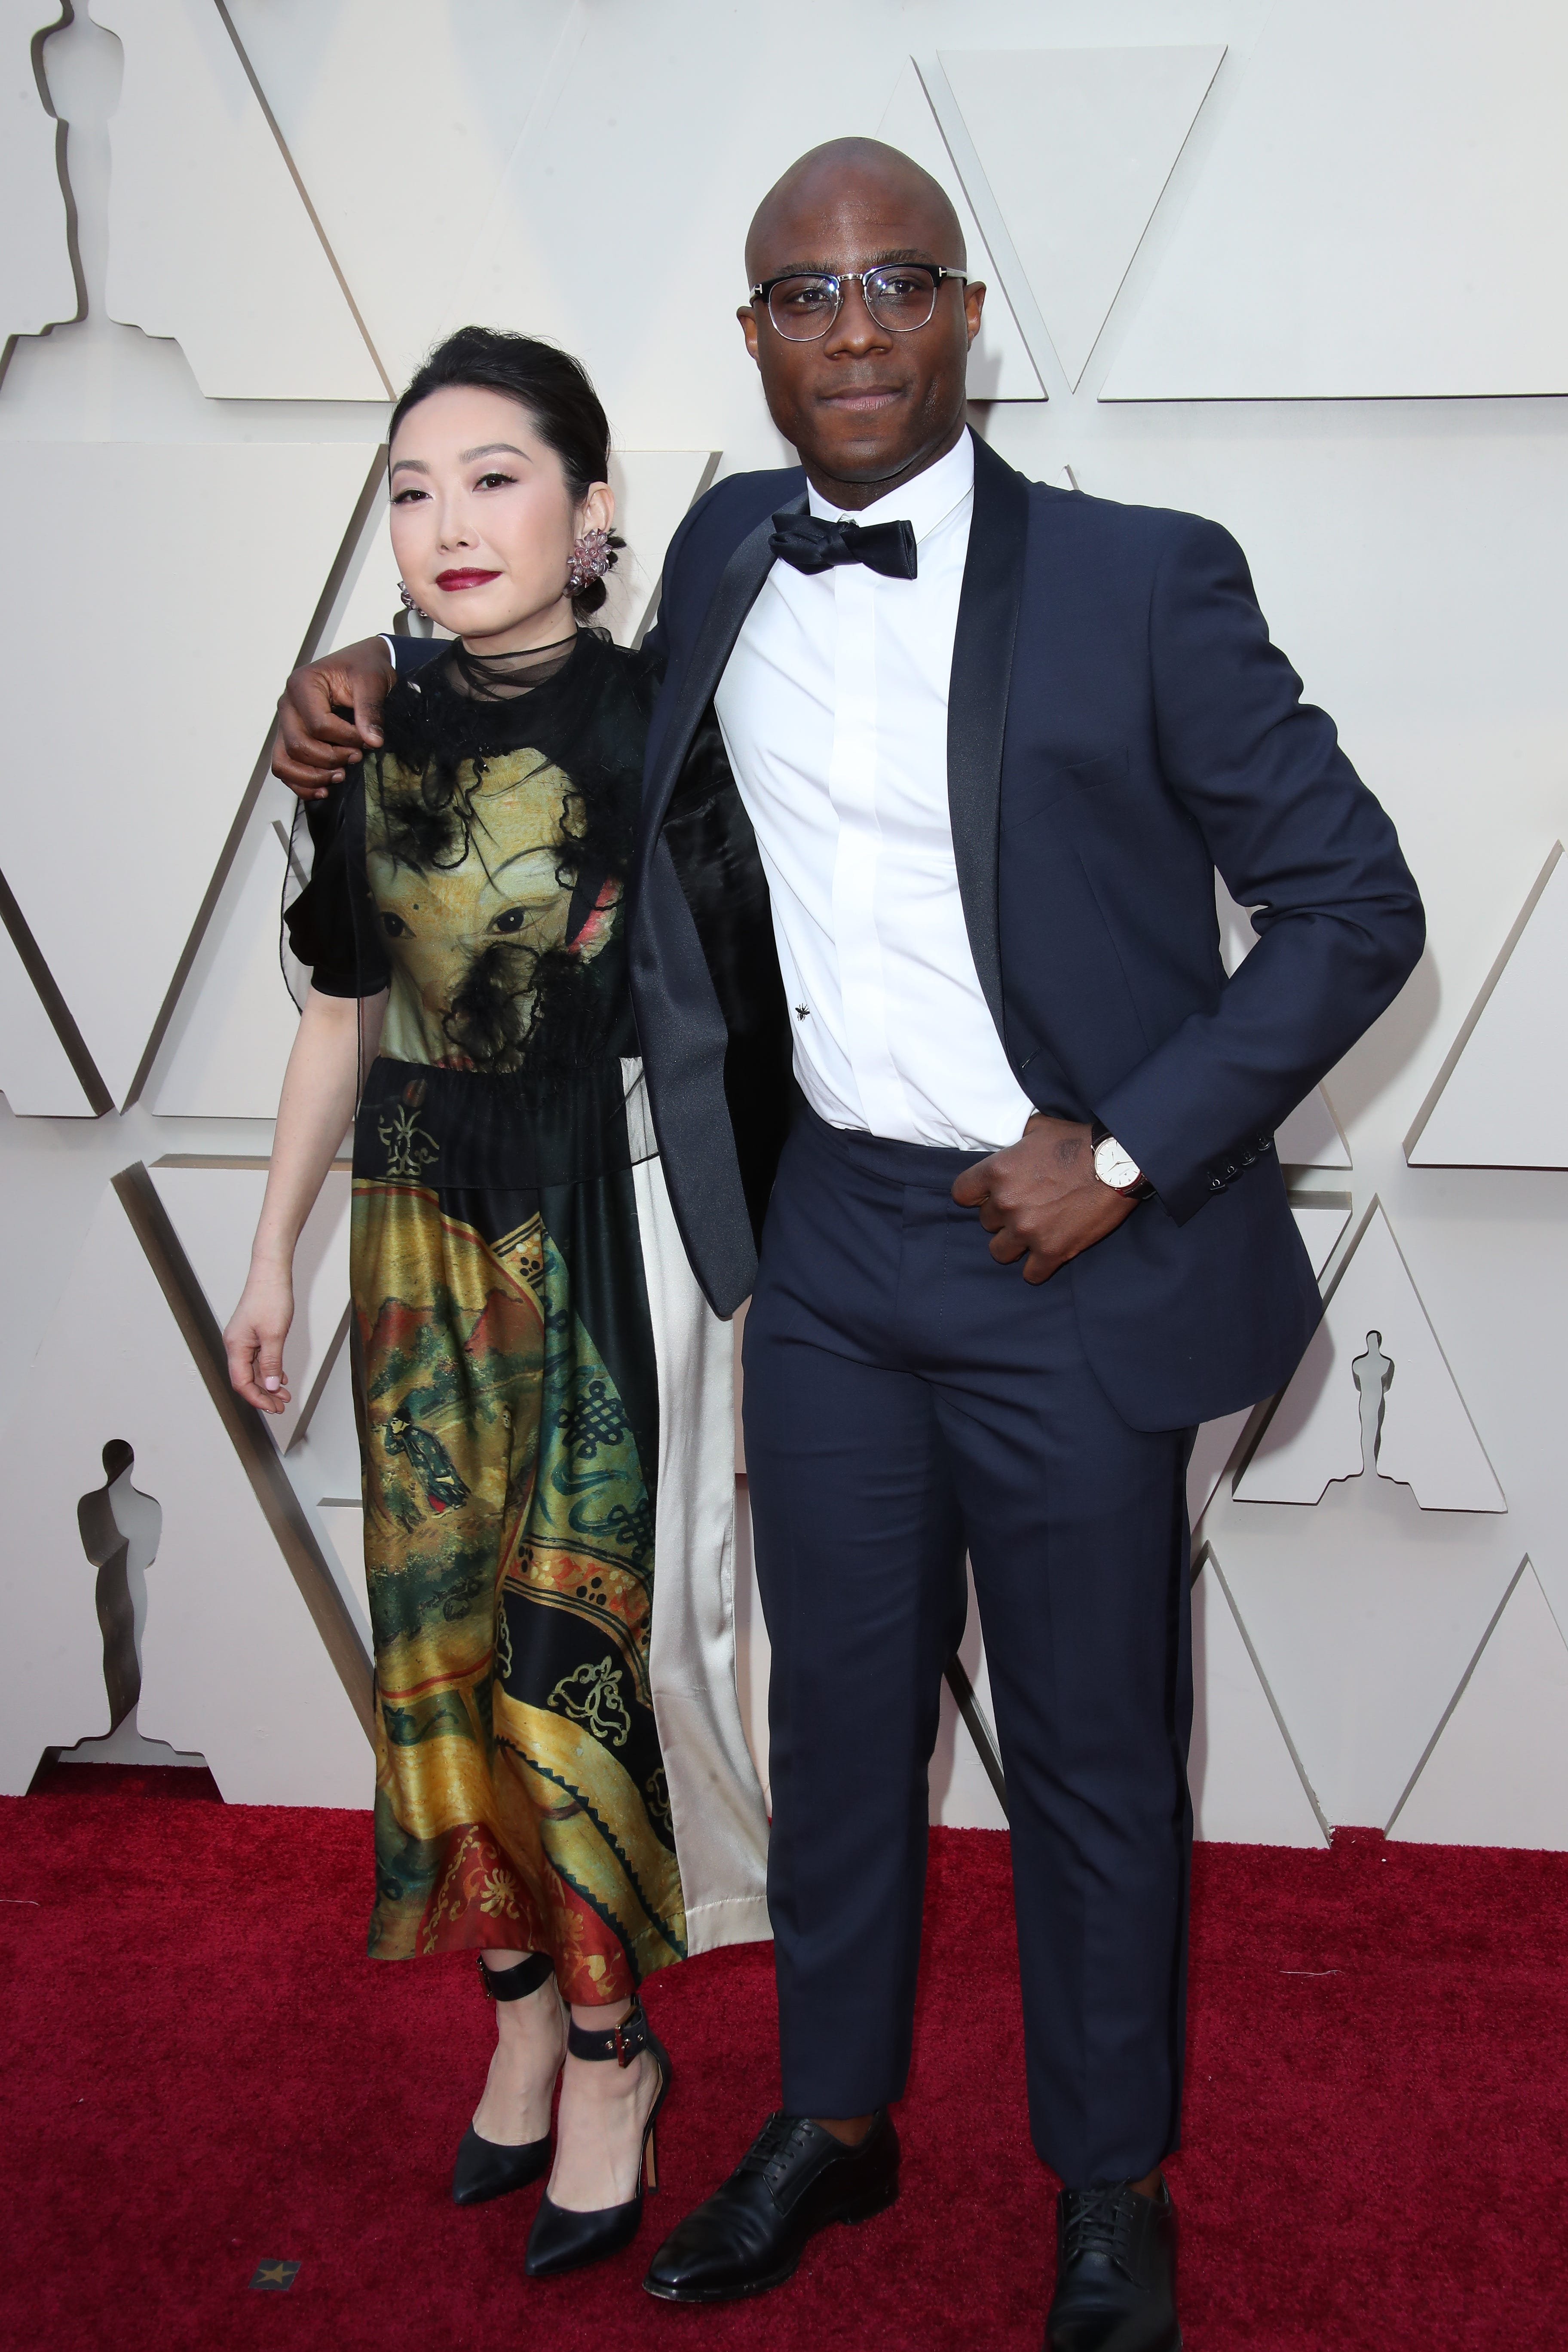 February 24, 2019; Los Angeles, CA, USA; Lulu Wang, left and Barry Jenkins arrives at the 91st Academy Awards at the Dolby Theatre. Mandatory Credit: Dan MacMedan-USA TODAY NETWORK (Via OlyDrop)